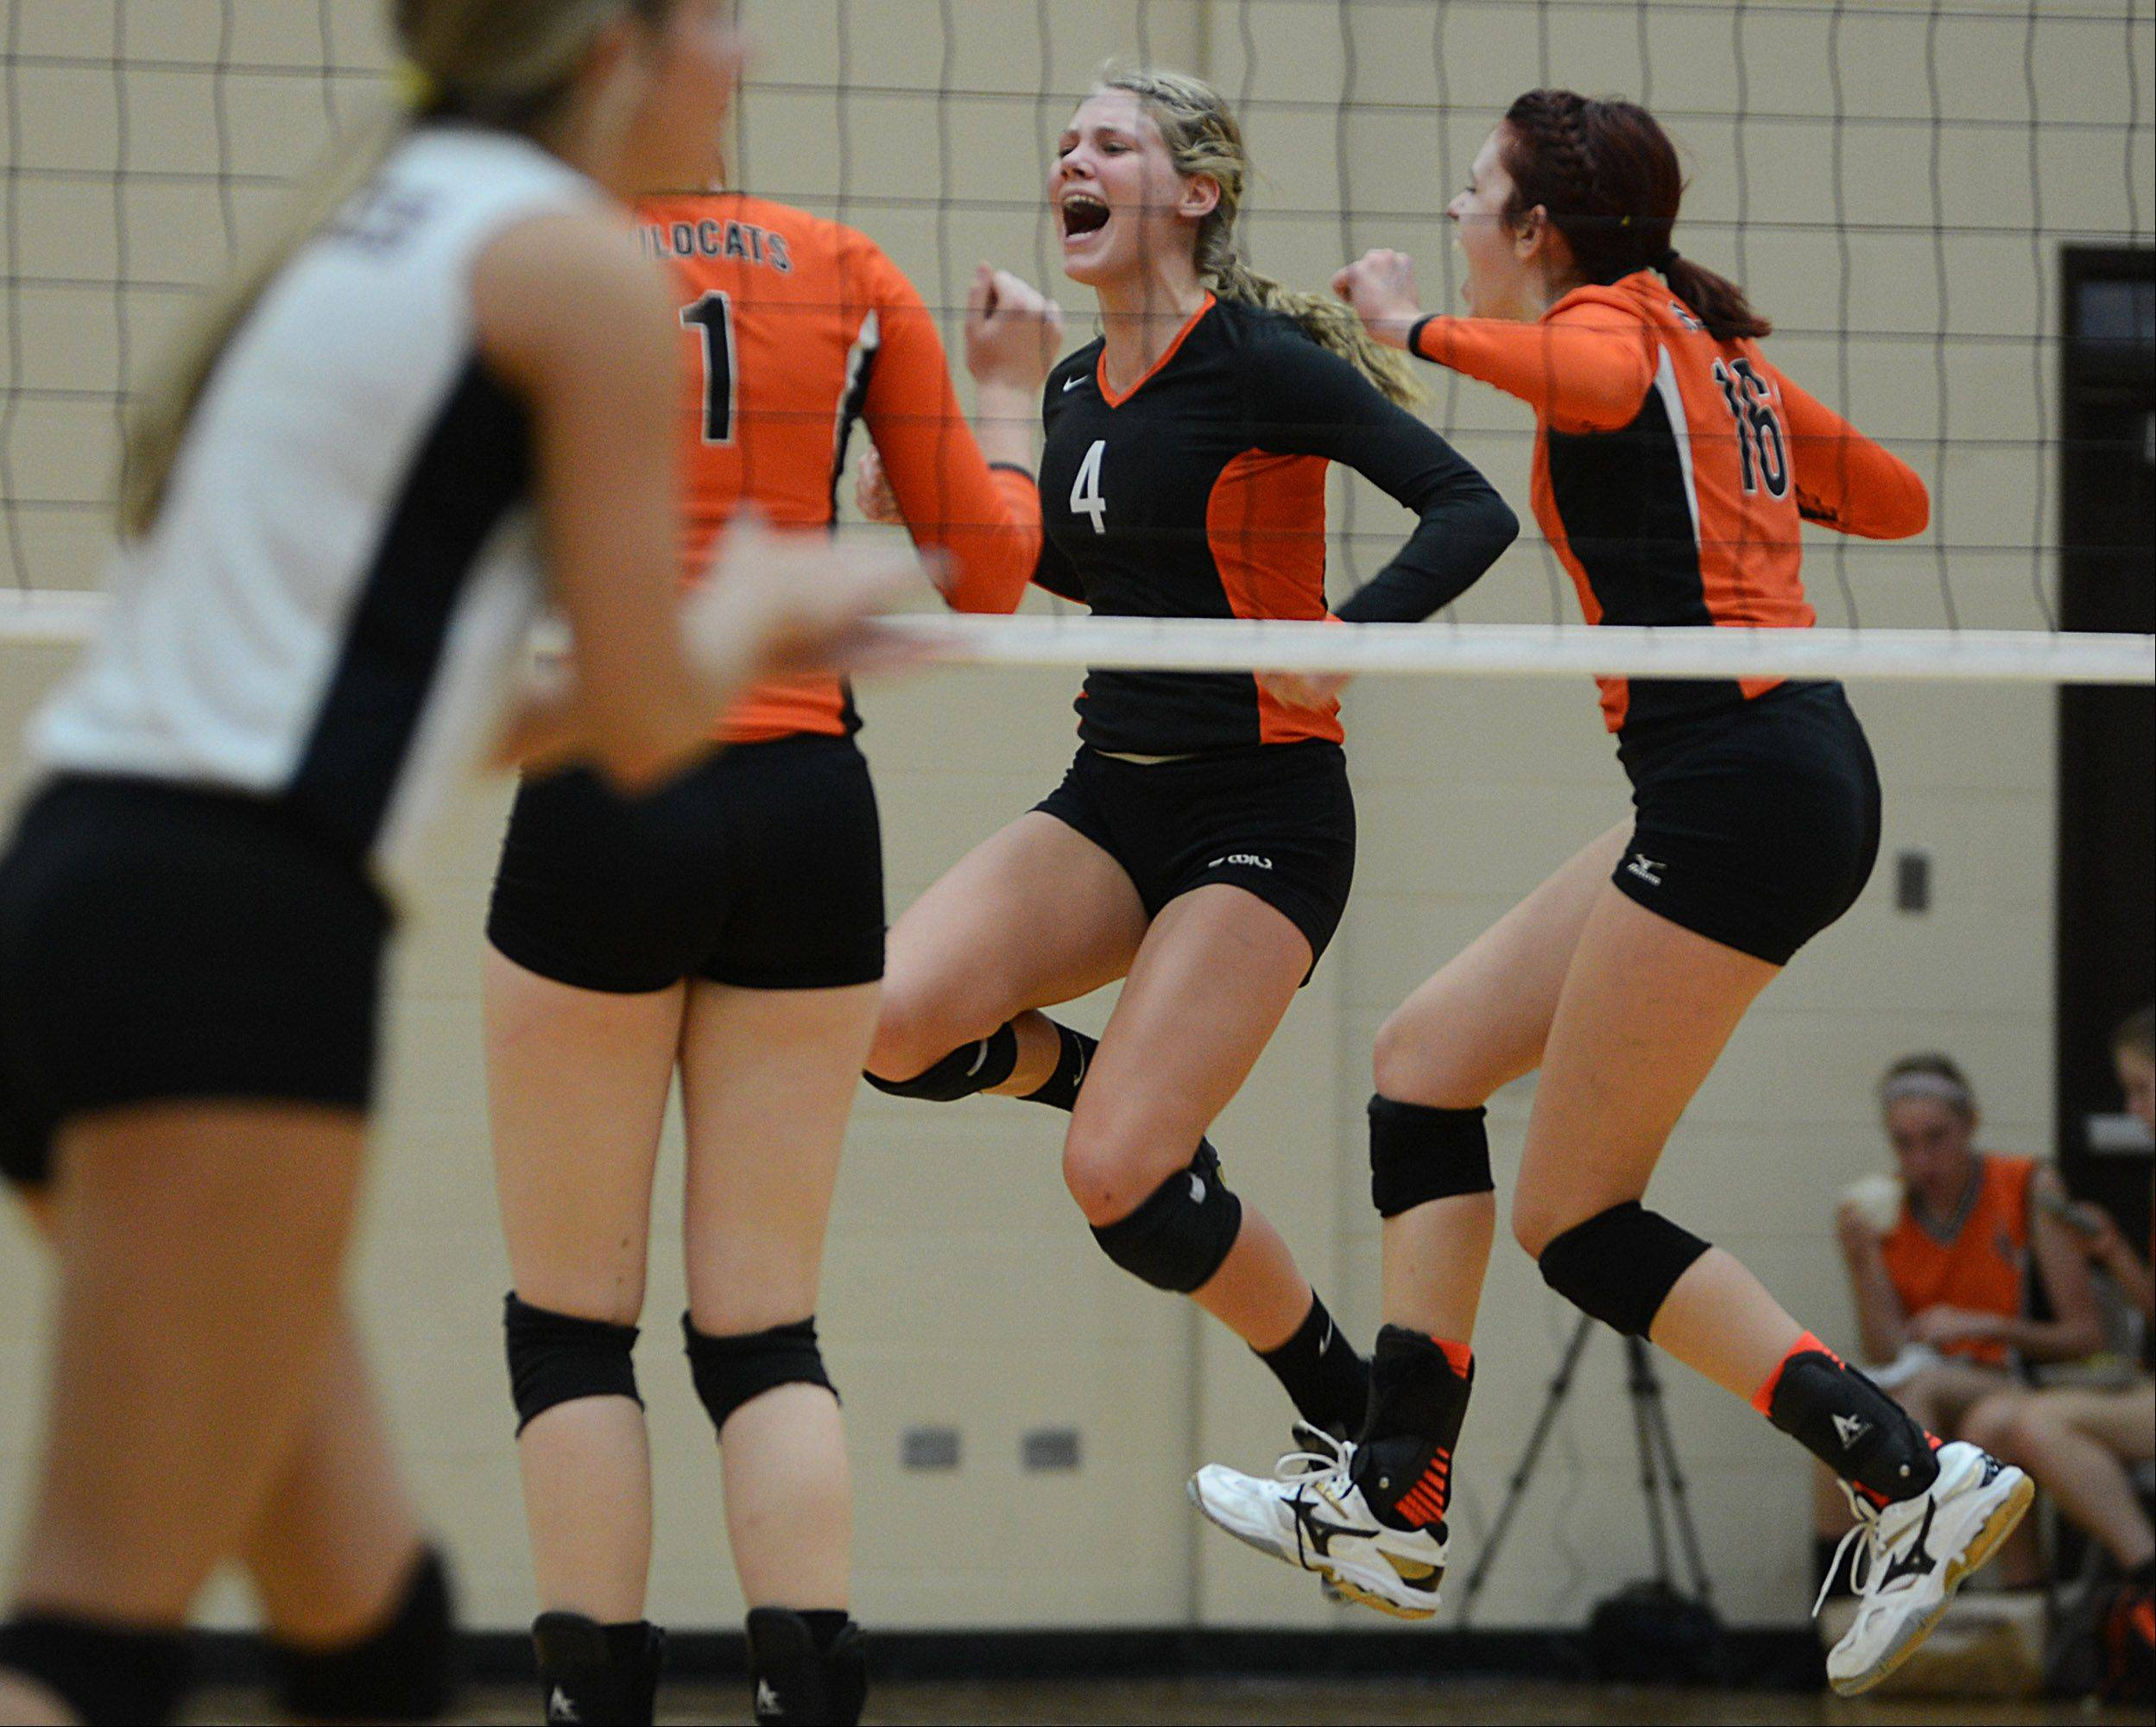 Libertyville's Morgan O'Brien (4) and Rhiannon Prentiss (16) celebrate a point on their way to defeating Zion-Benton in the first game of Monday's volleyball match in Libertyville.